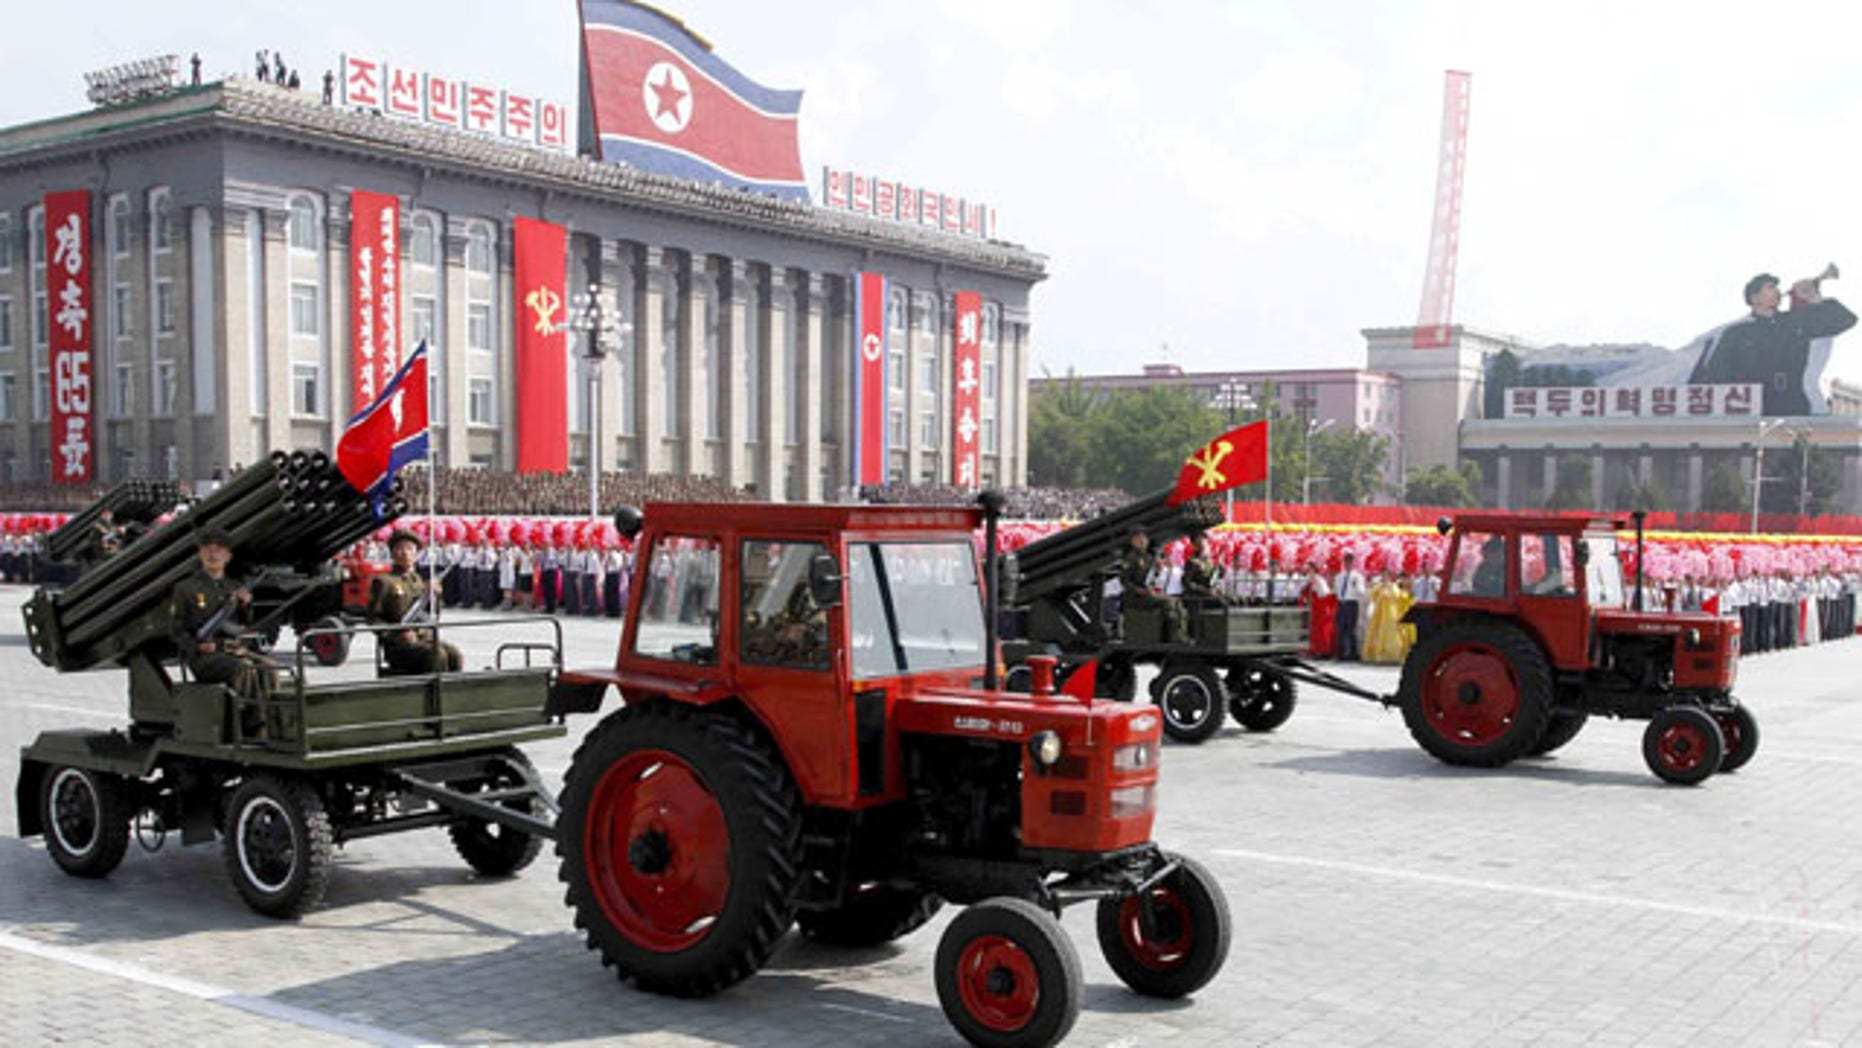 September 9, 2013: Tractors pull artillery through Kim Il Sung Square during a military parade to mark the 65th anniversary of North Korea's founding in Pyongyang.